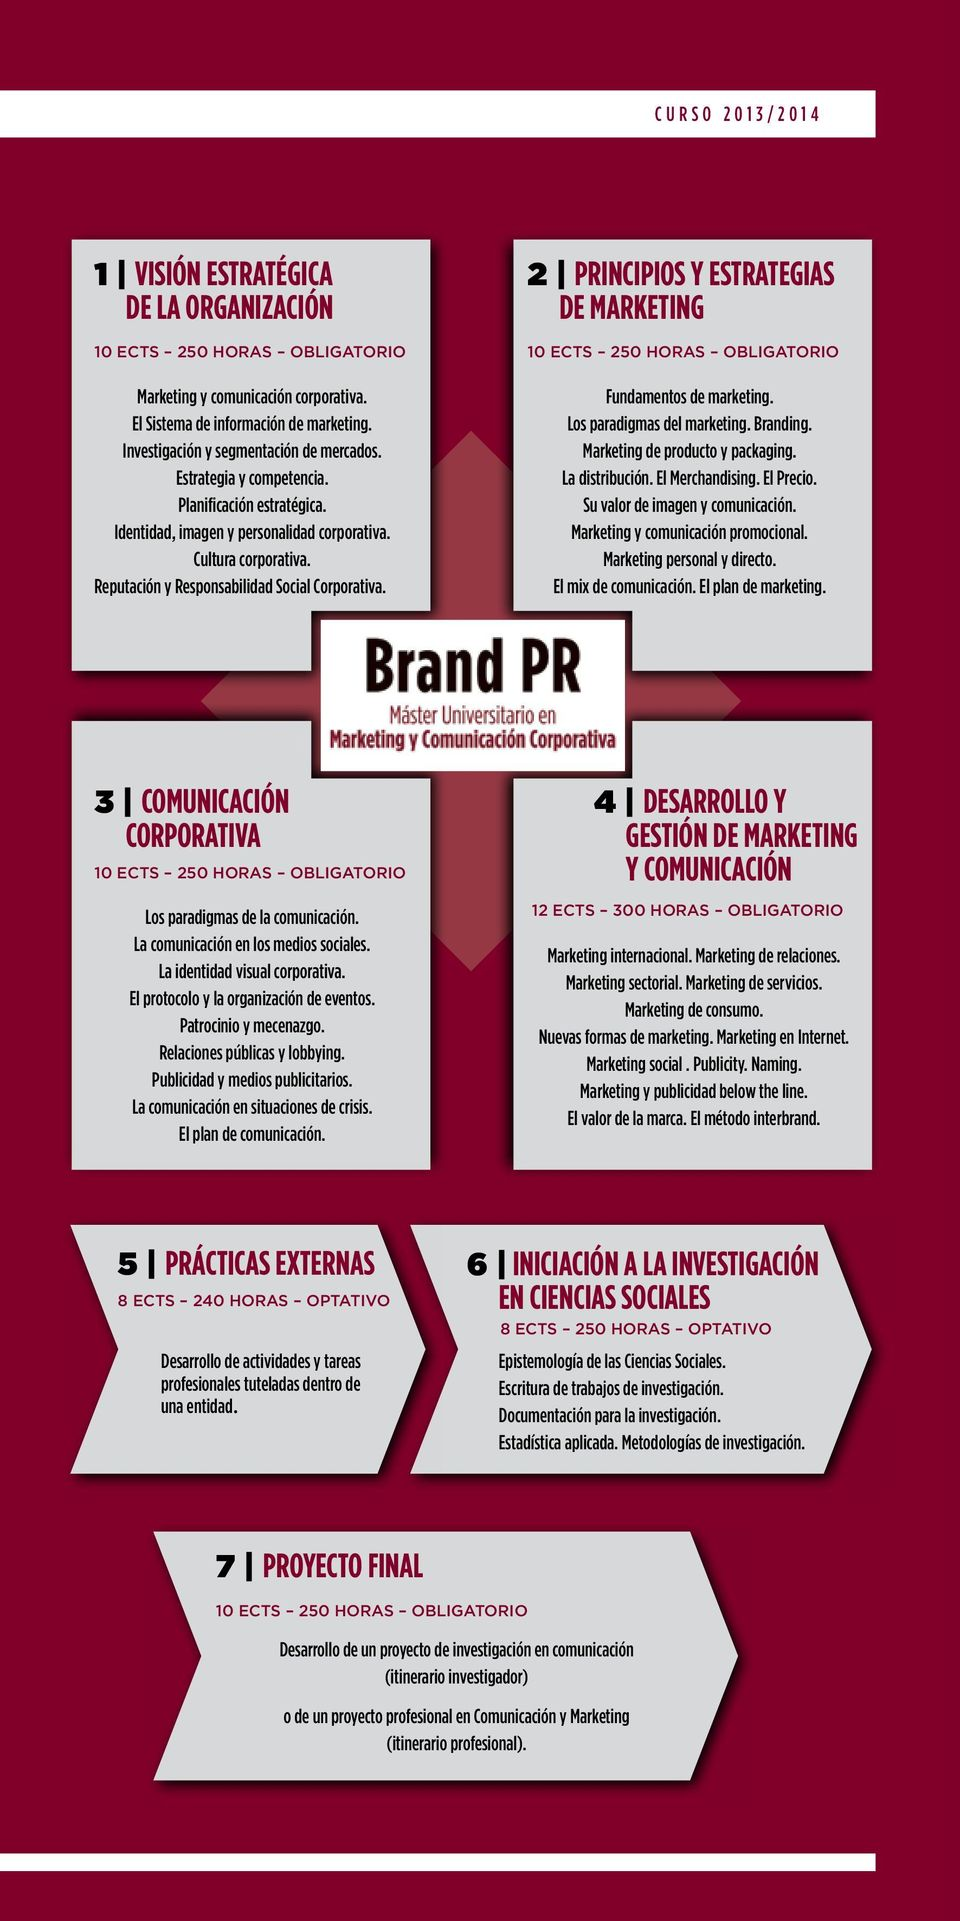 Reputación y Responsabilidad Social Corporativa. 2 Principios y estrategias de marketing 10 ECTS 250 Horas Obligatorio Fundamentos de marketing. Los paradigmas del marketing. Branding.